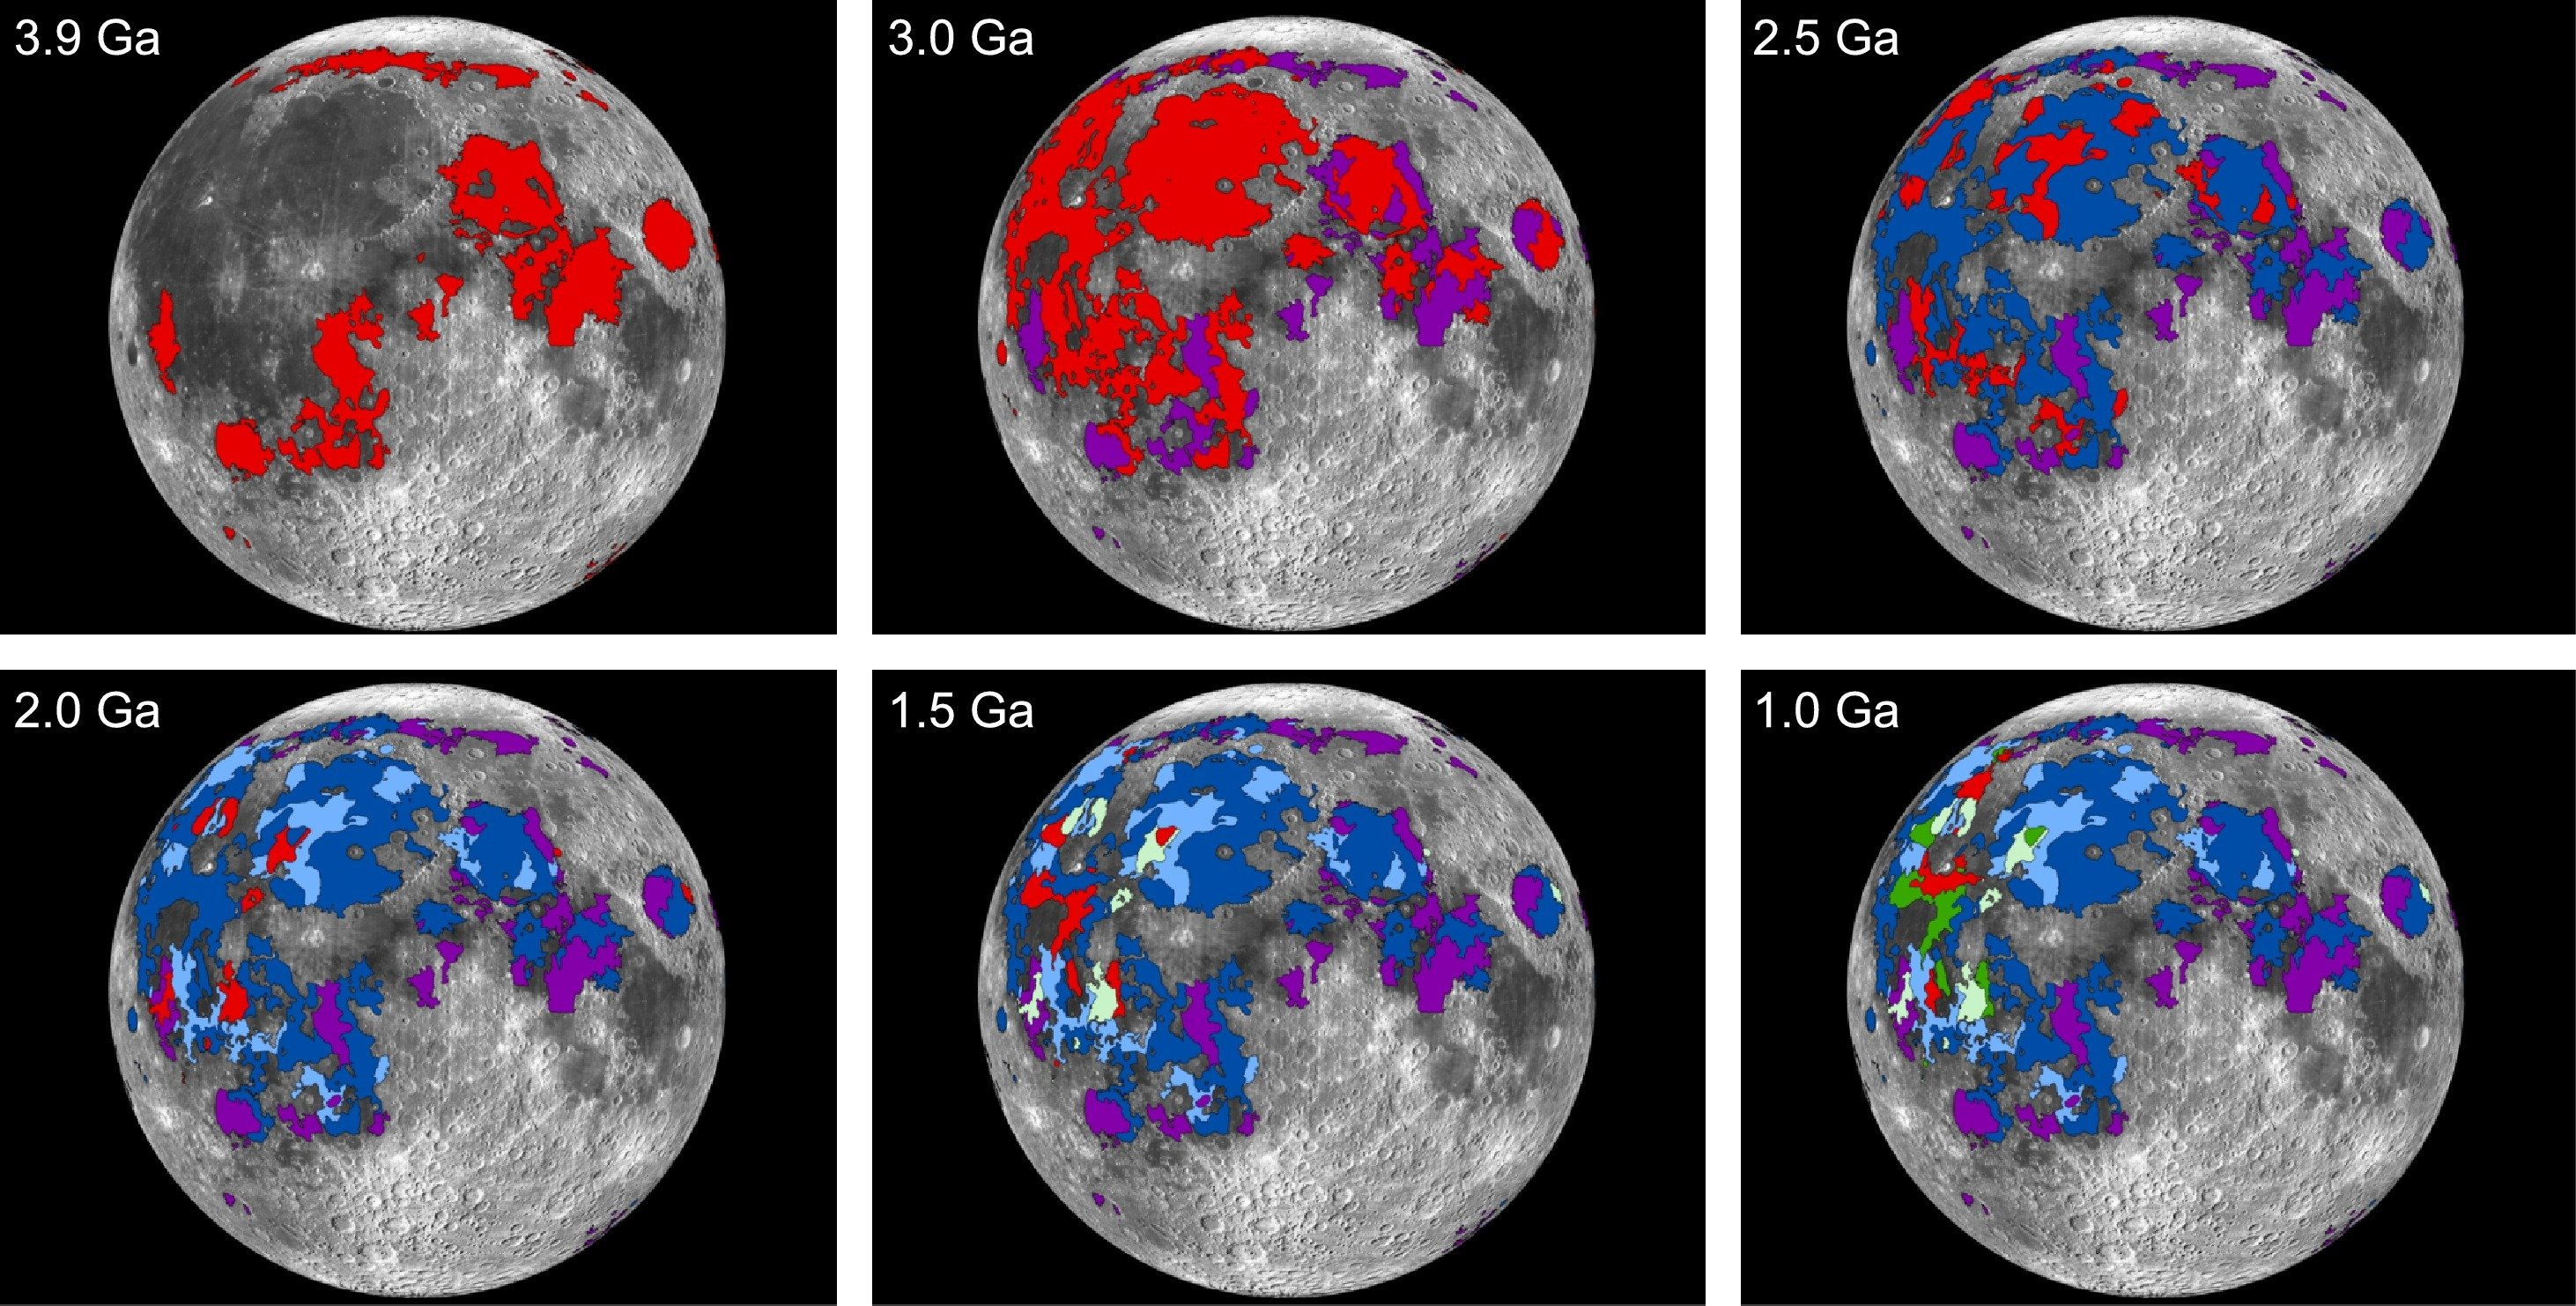 Our Moon Once had Atmosphere, Scientists Suggests